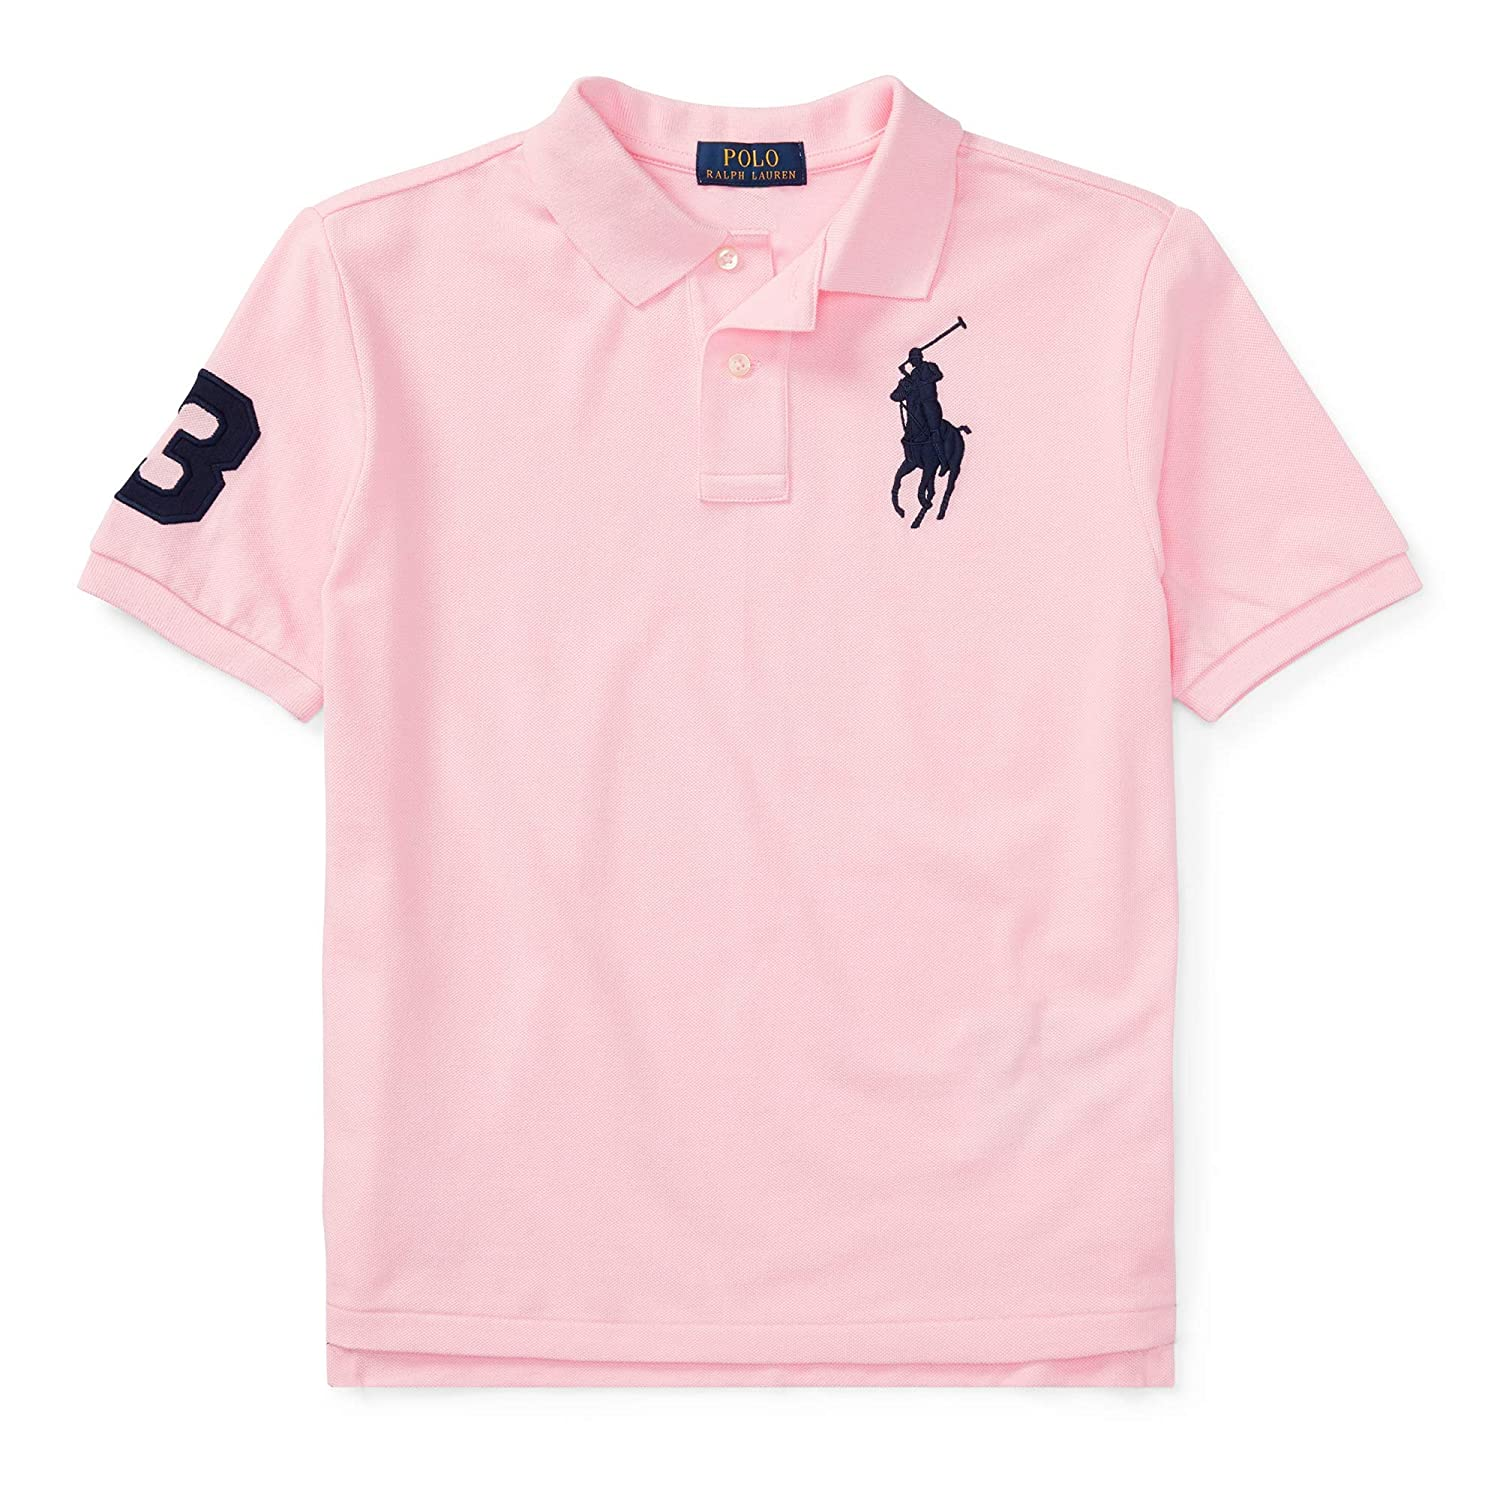 Ralph Lauren Cotton Mesh Polo Shirt